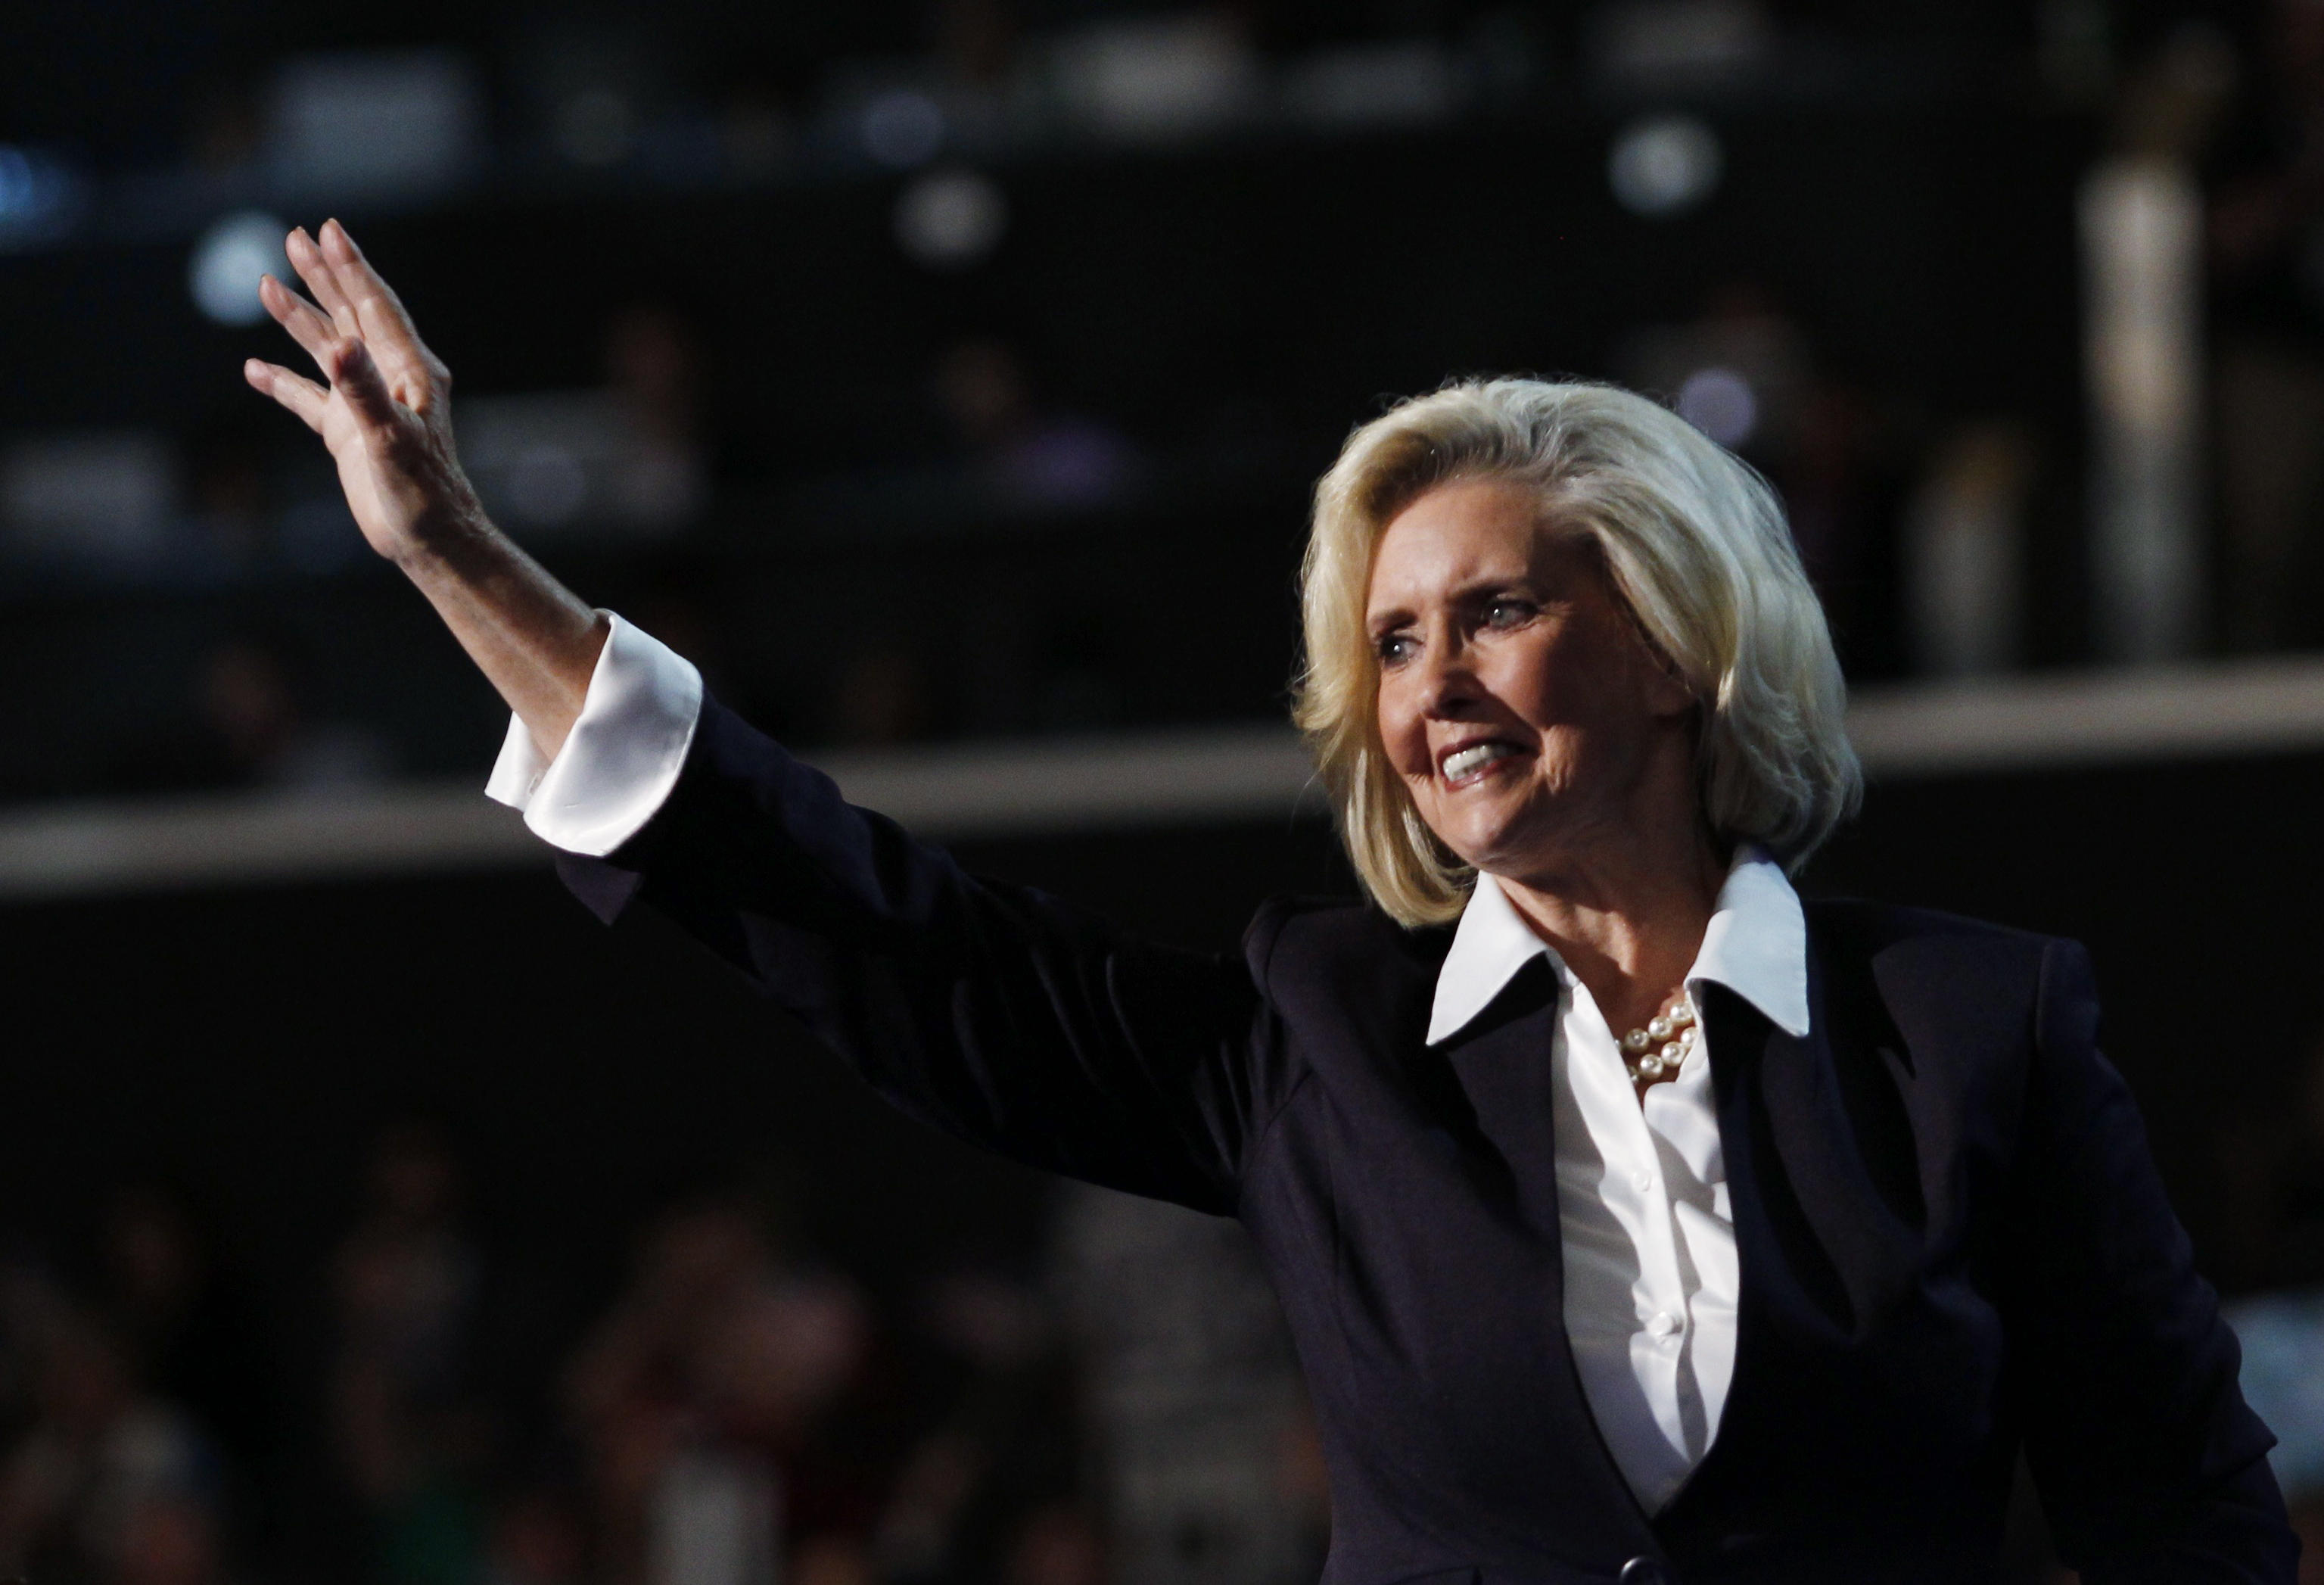 Women's rights leader Lilly Ledbetter, namesake of the Lilly Ledbetter Fair Pay Act, addresses the first session of the Democratic National Convention in Charlotte, N.C., on Sept. 4, 2012.